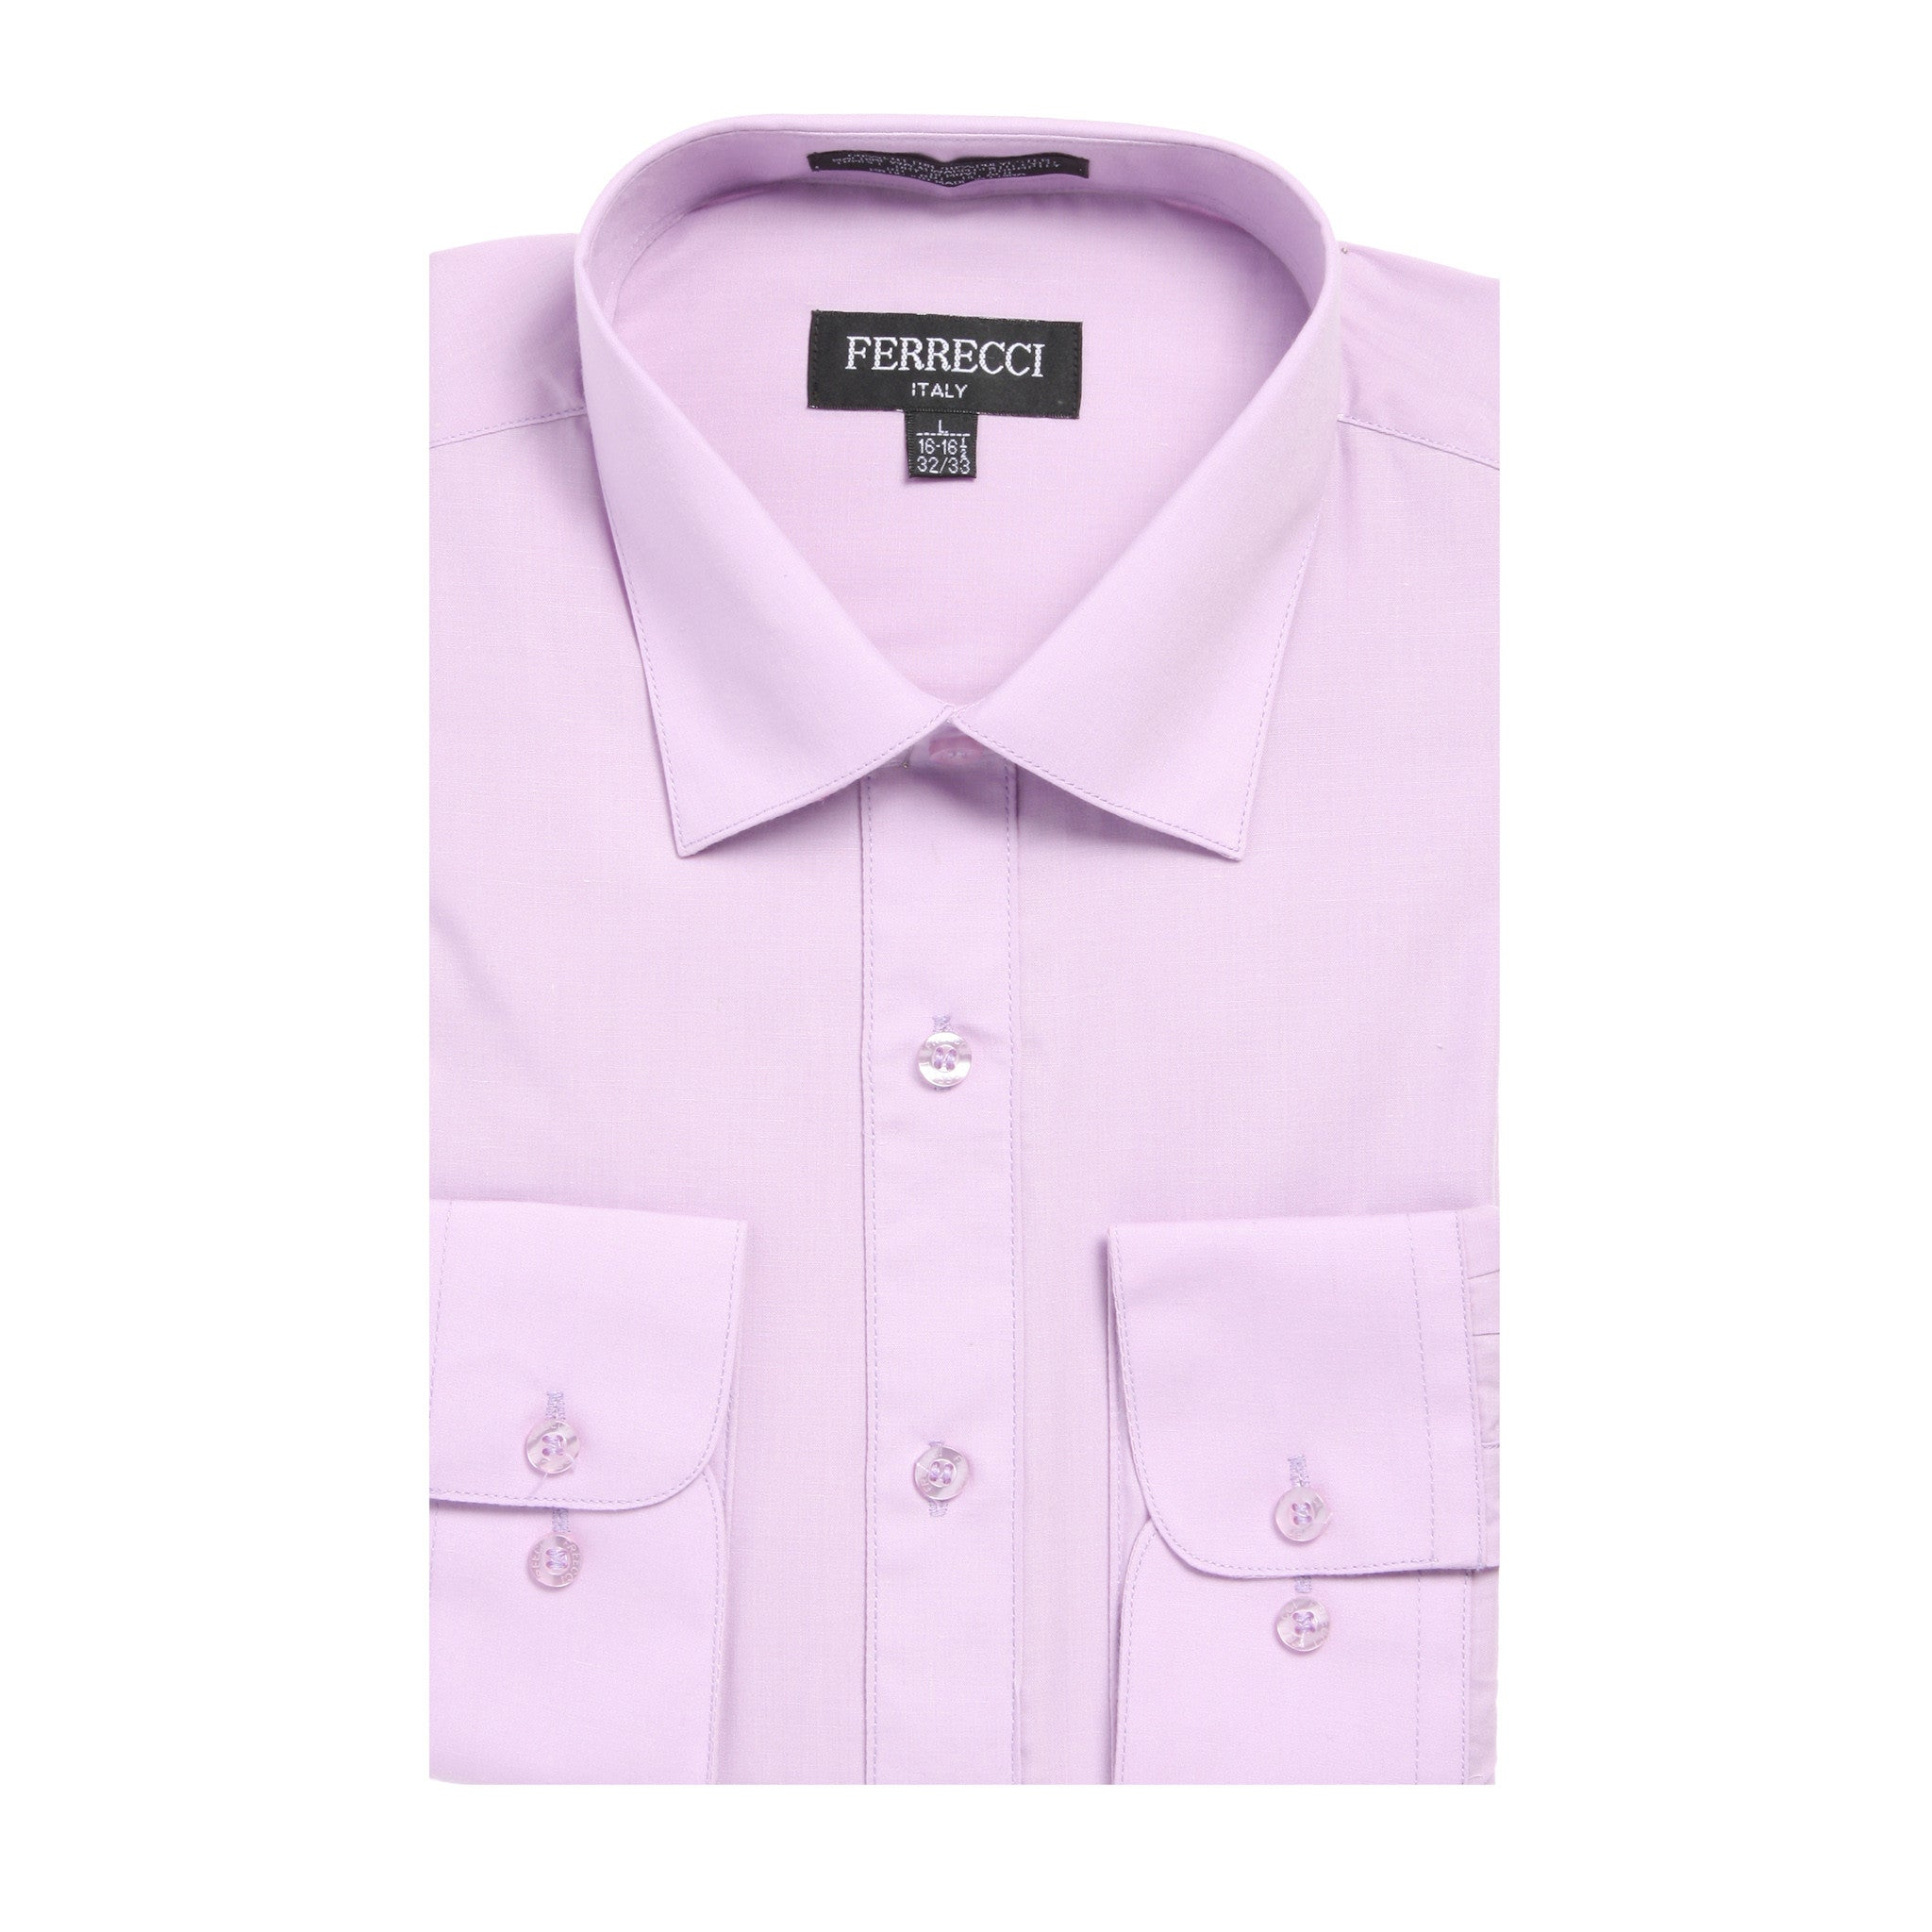 Mens Solid Light Colored Dress Shirt - Many Colors